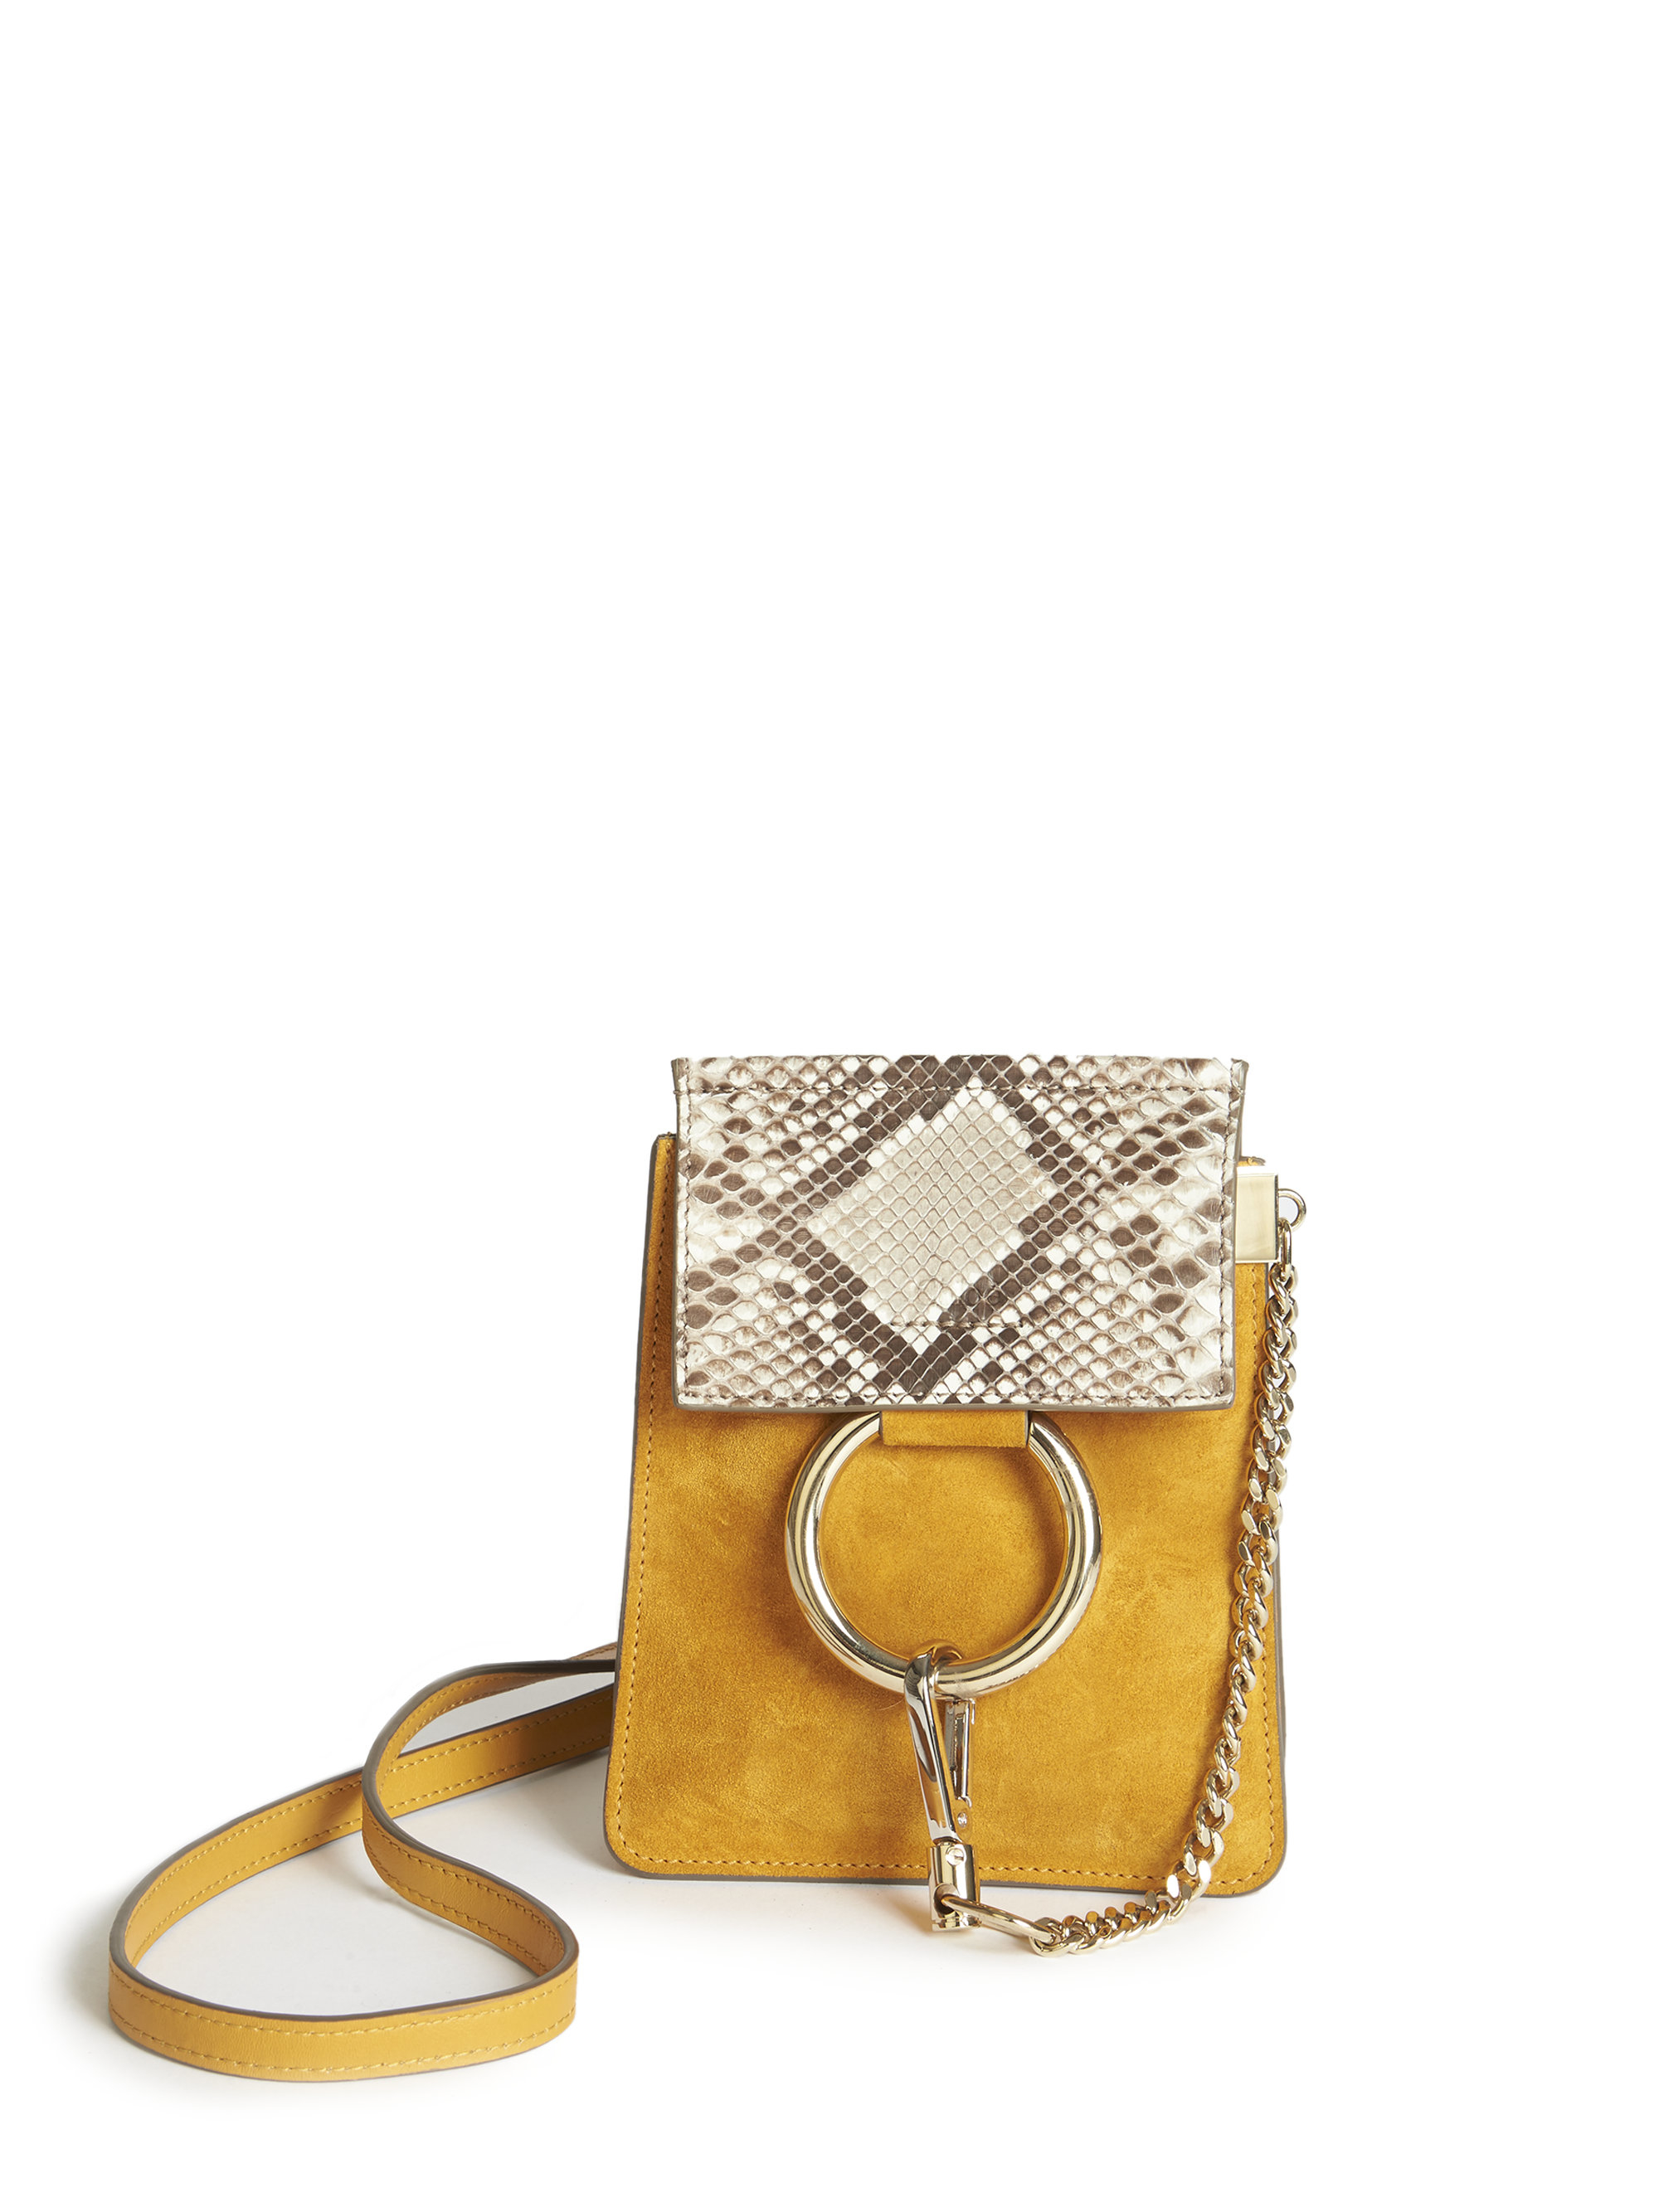 Lyst - Chloé Faye Mini Suede and Python-Embossed Bag 36457e40c98b6